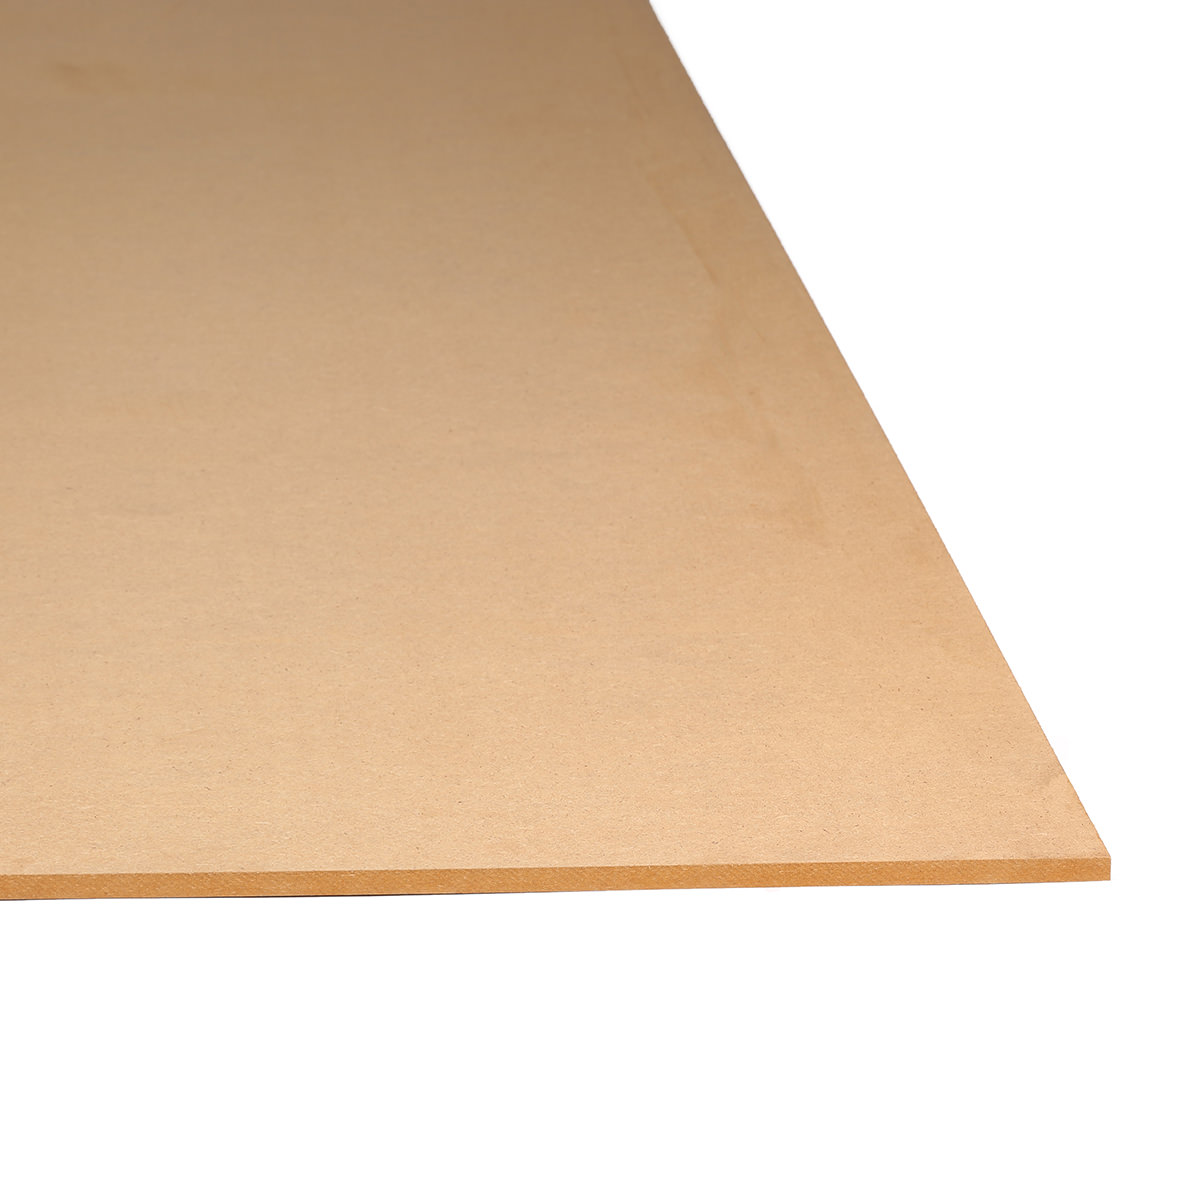 Medium Density Flooring ~ Quot exterior grade mdf medium density overlay mdo panel